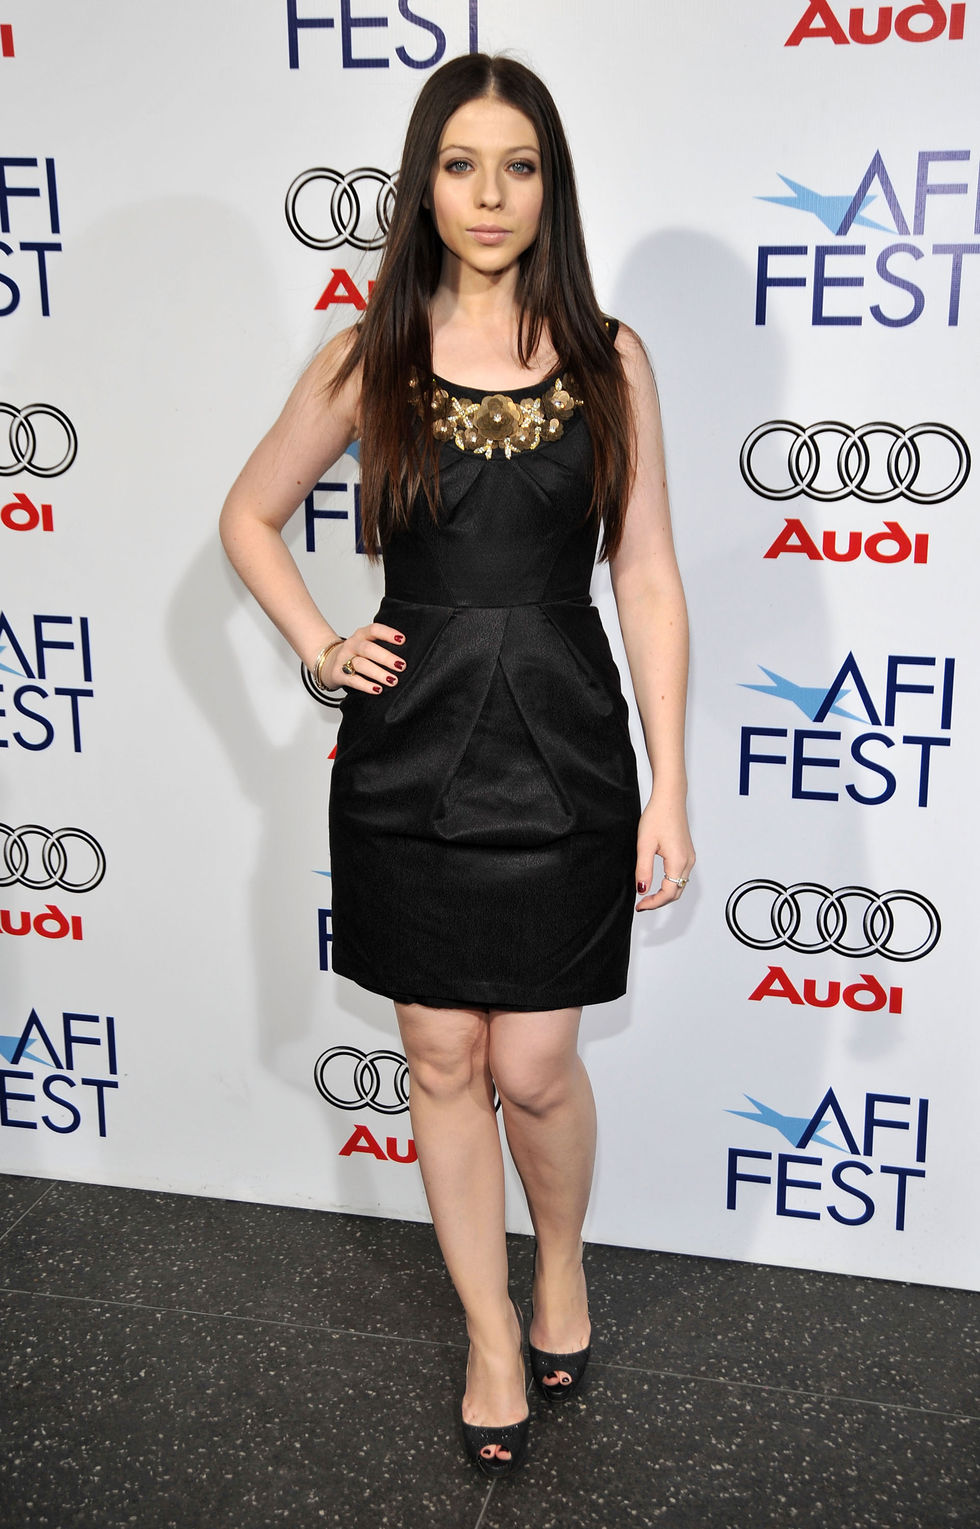 michelle-trachtenberg-che-screeening-at-2008-afi-fest-in-hollywood-01